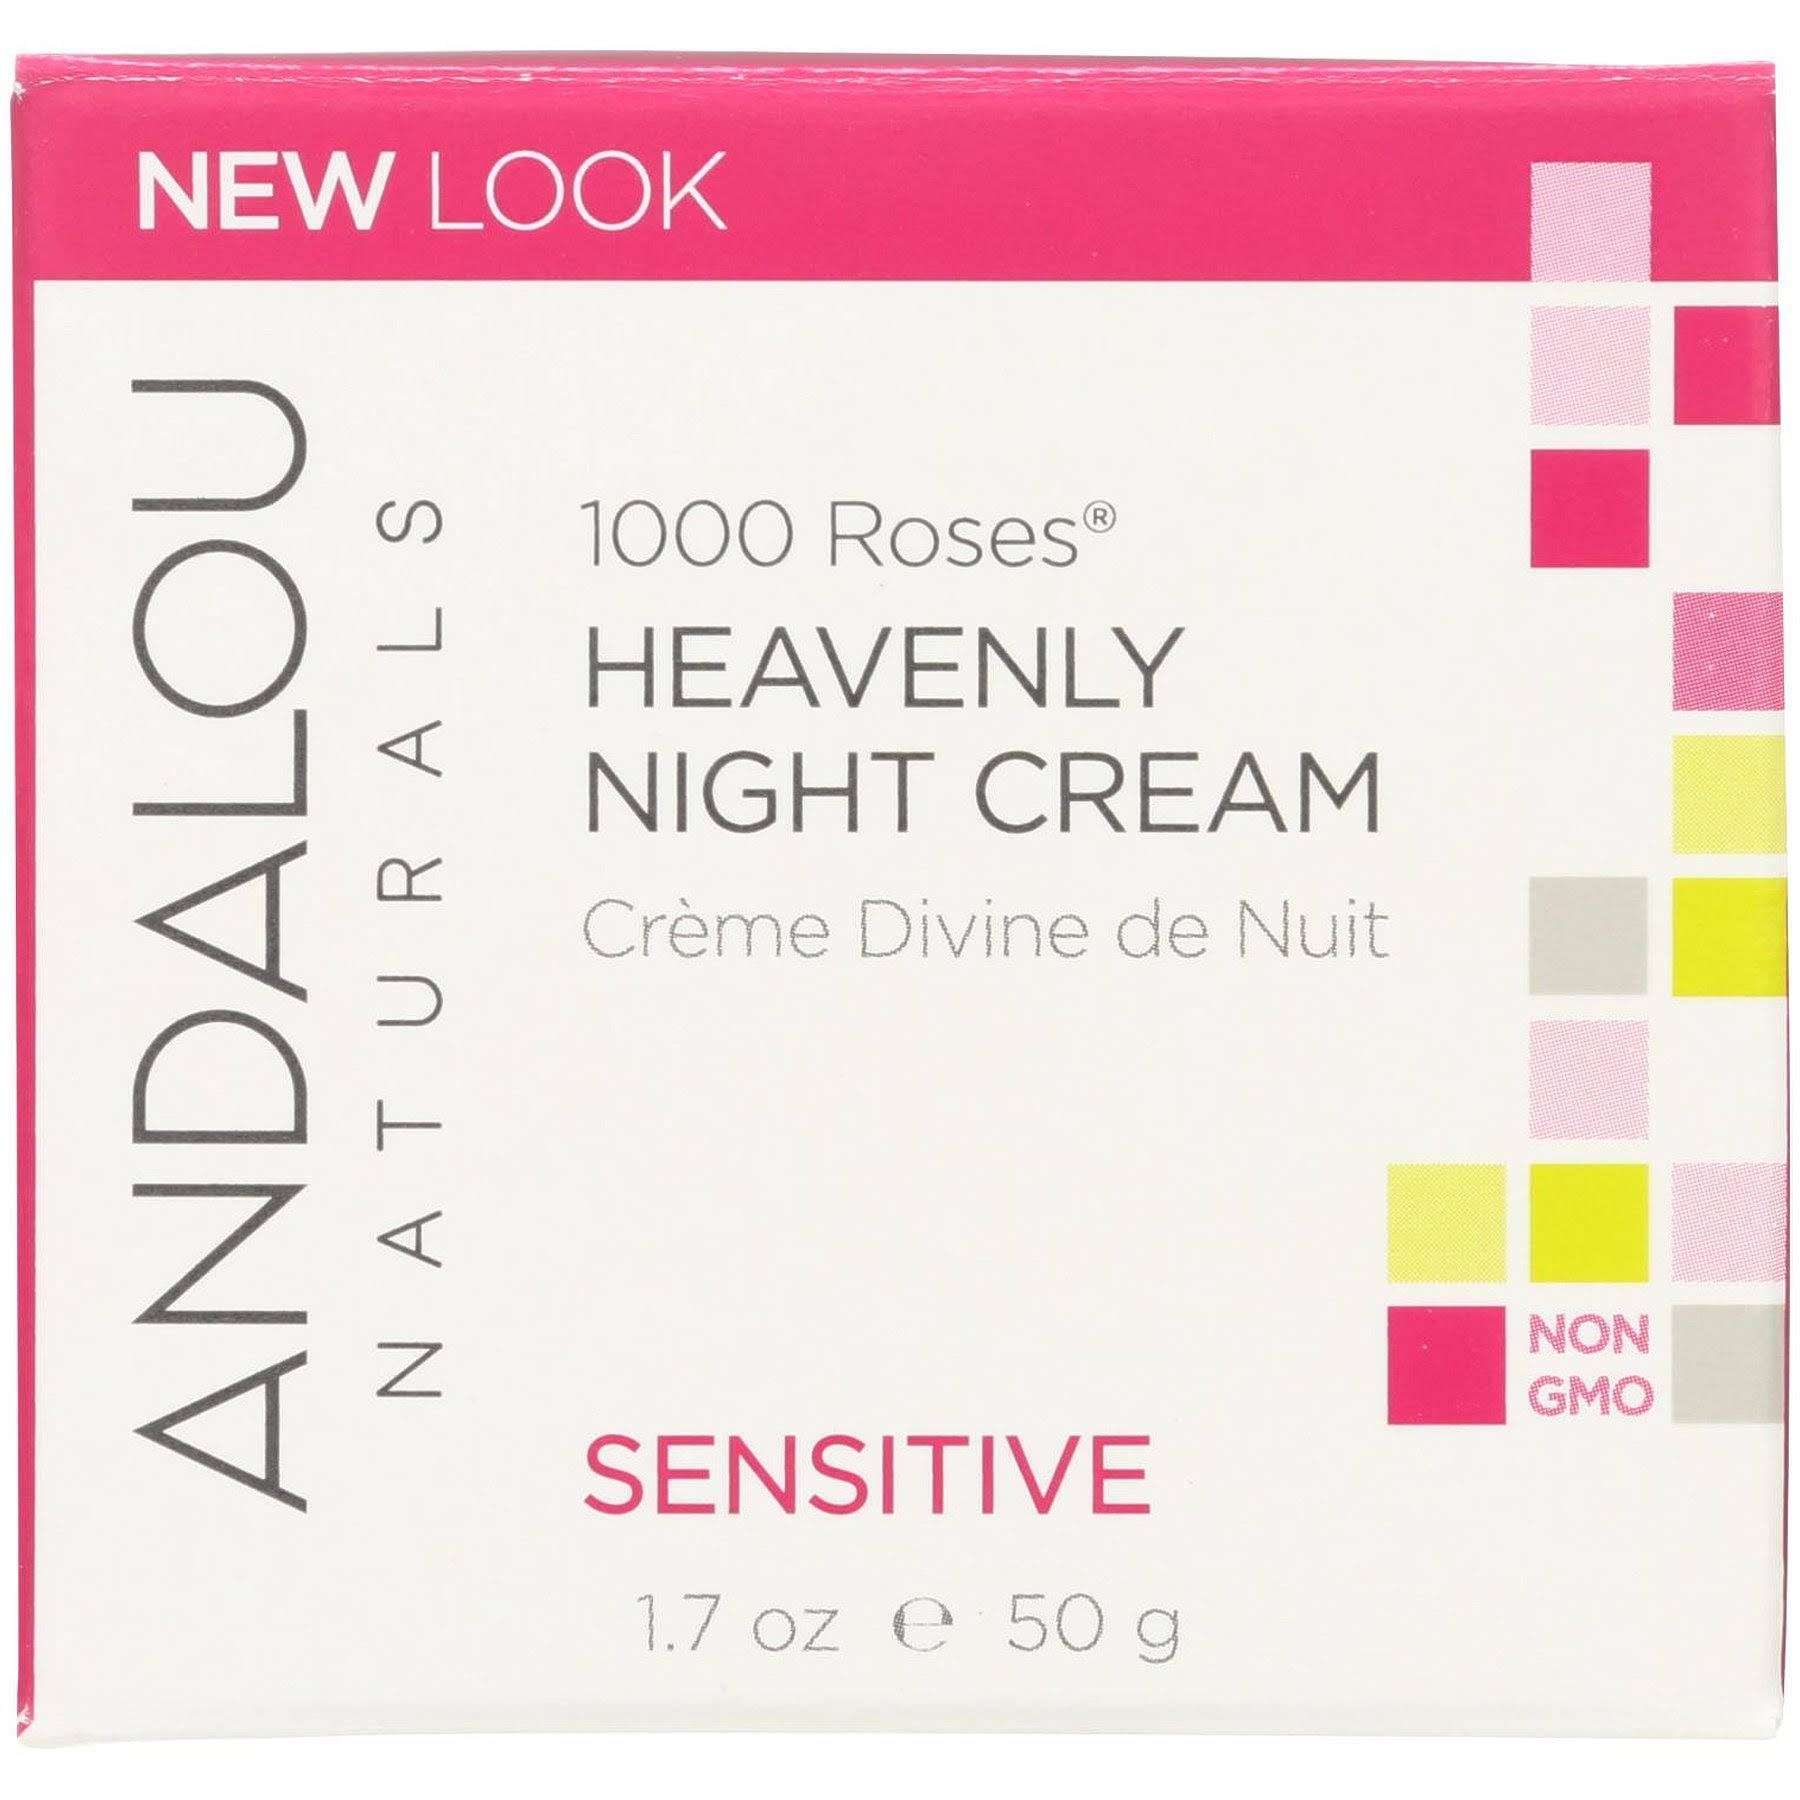 Andalou Naturals Heavenly Night Cream - 1.7oz, 1000 Roses